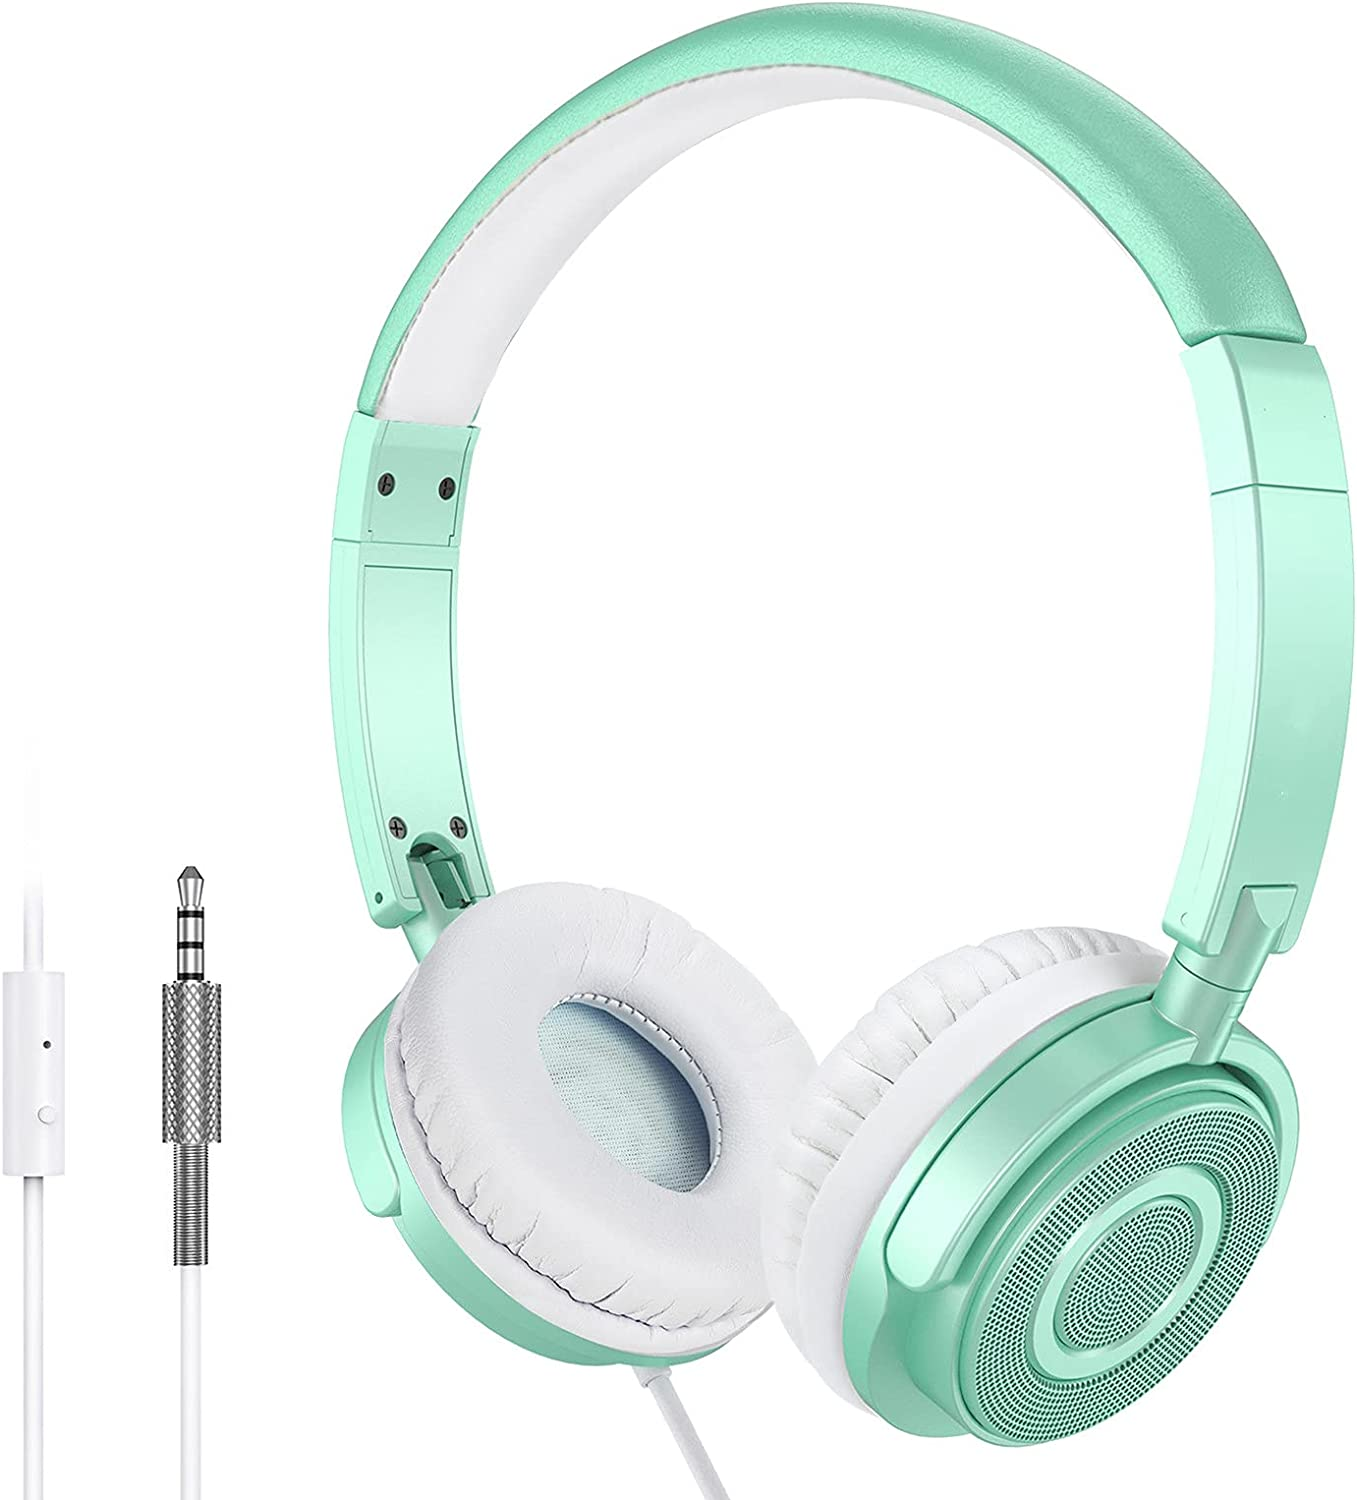 On Ear Headphones with Microphone, Lightweight Portable Foldable Headsets with Stereo Bass, 1.5M Tangle Free Cord, Adjustable Headband for Adults at Home Office Travel, Green